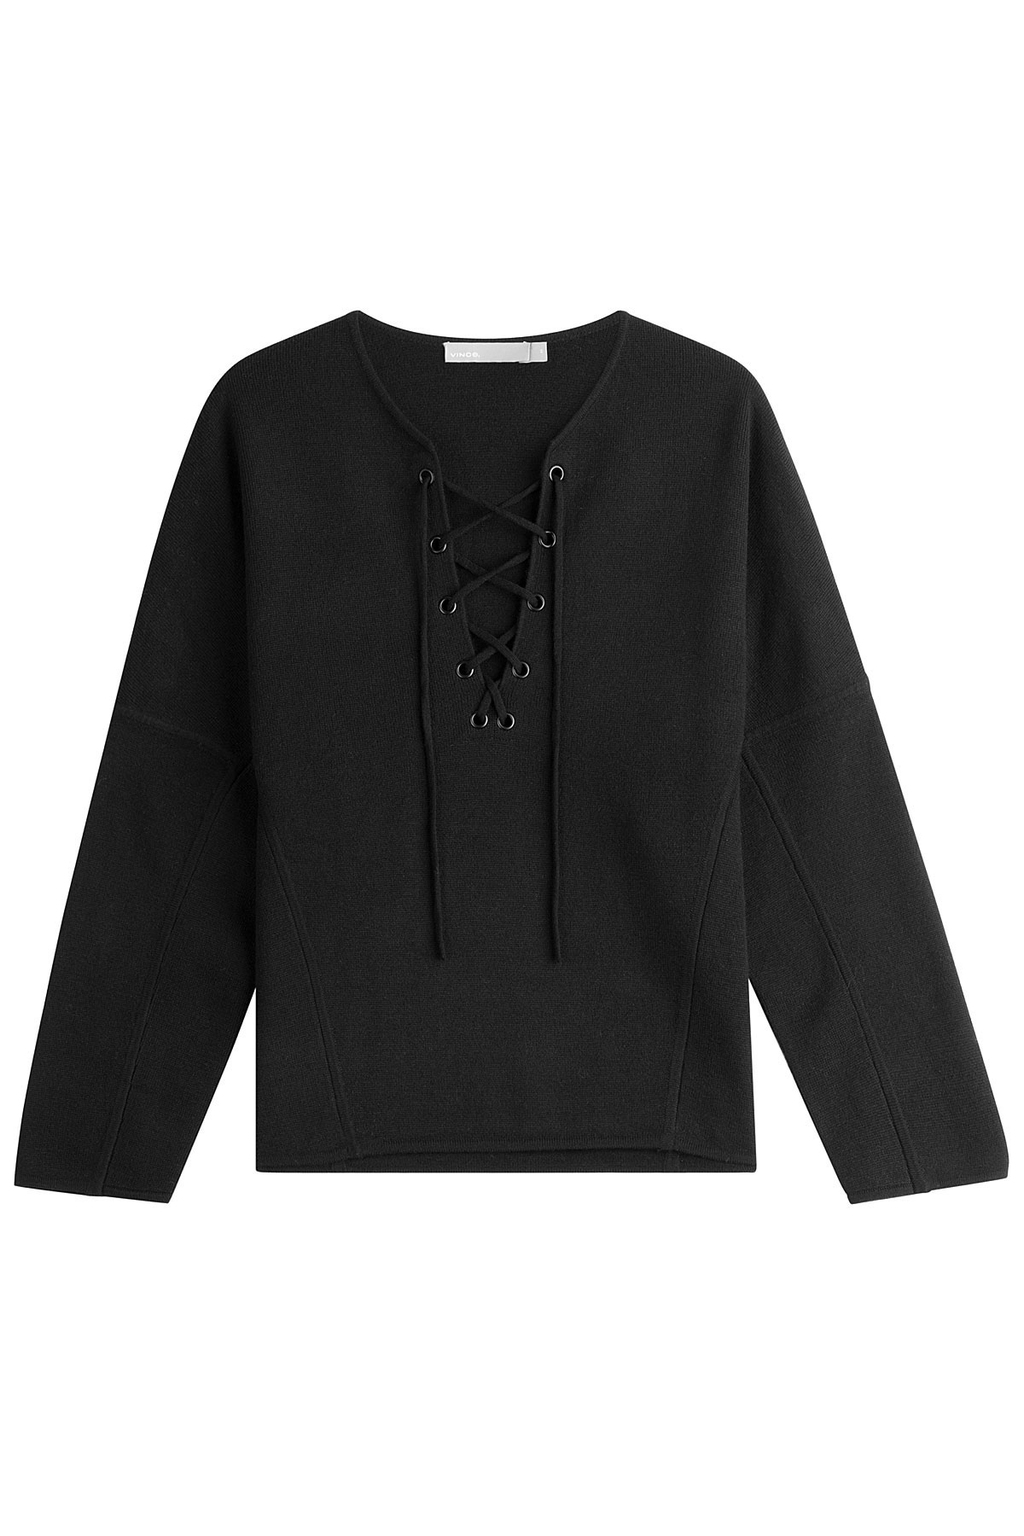 Wool And Cashmere Pullover - neckline: v-neck; pattern: plain; style: standard; predominant colour: black; occasions: casual, creative work; length: standard; fibres: wool - mix; fit: loose; sleeve length: long sleeve; sleeve style: standard; texture group: knits/crochet; pattern type: knitted - fine stitch; wardrobe: basic; season: a/w 2016